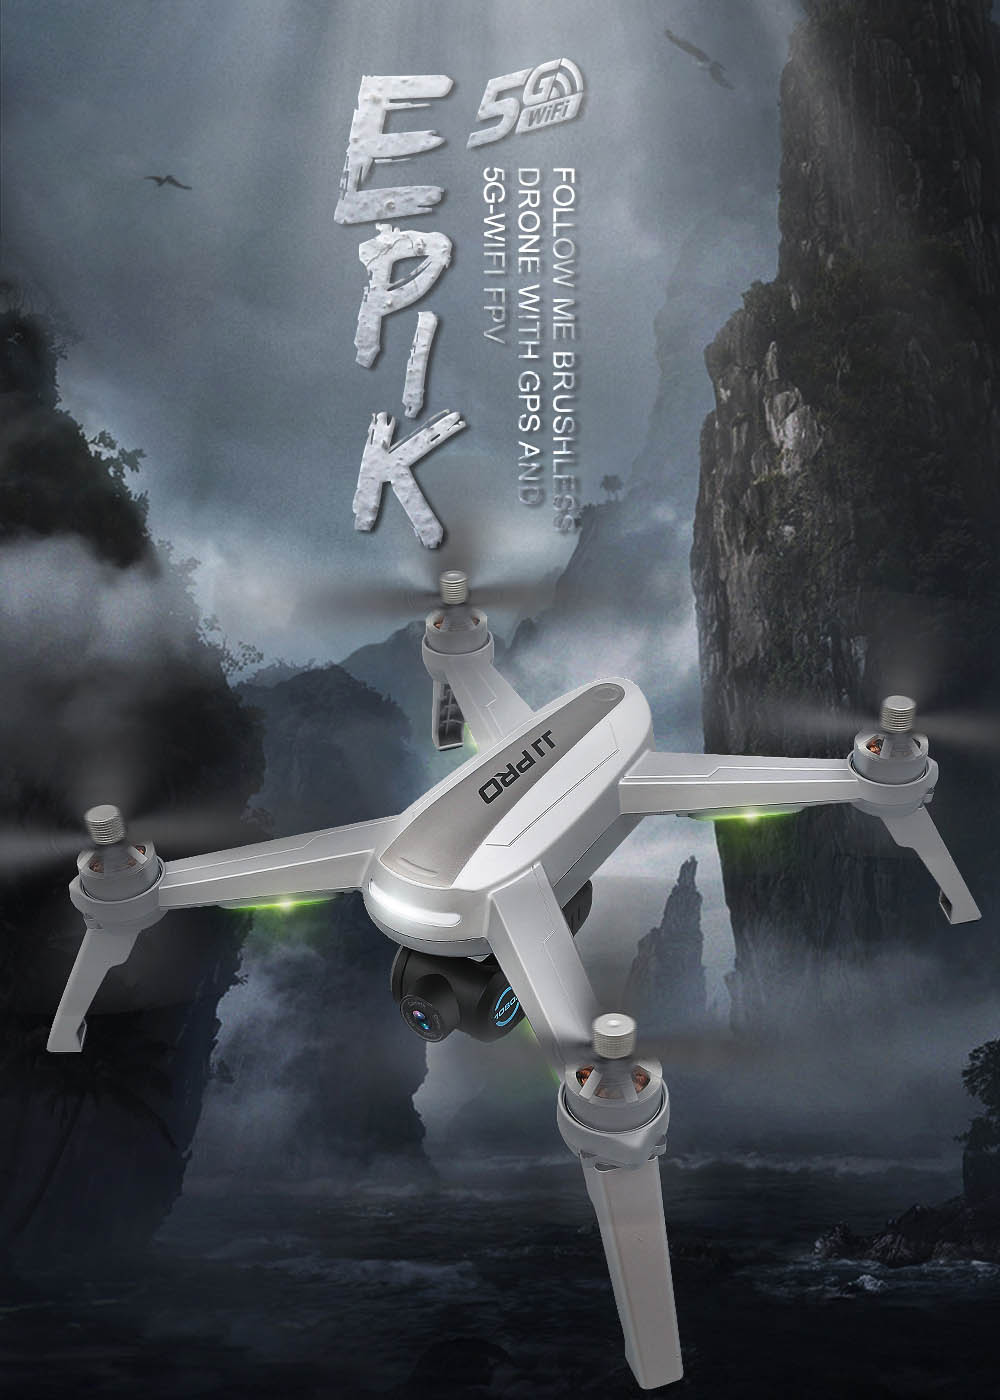 JJRC JJPRO X5 RC Drone 5G WiFi FPV Drones GPS Positioning Altitude Hold 1080P Camera Point of Interesting Follow Brushless Motor 1